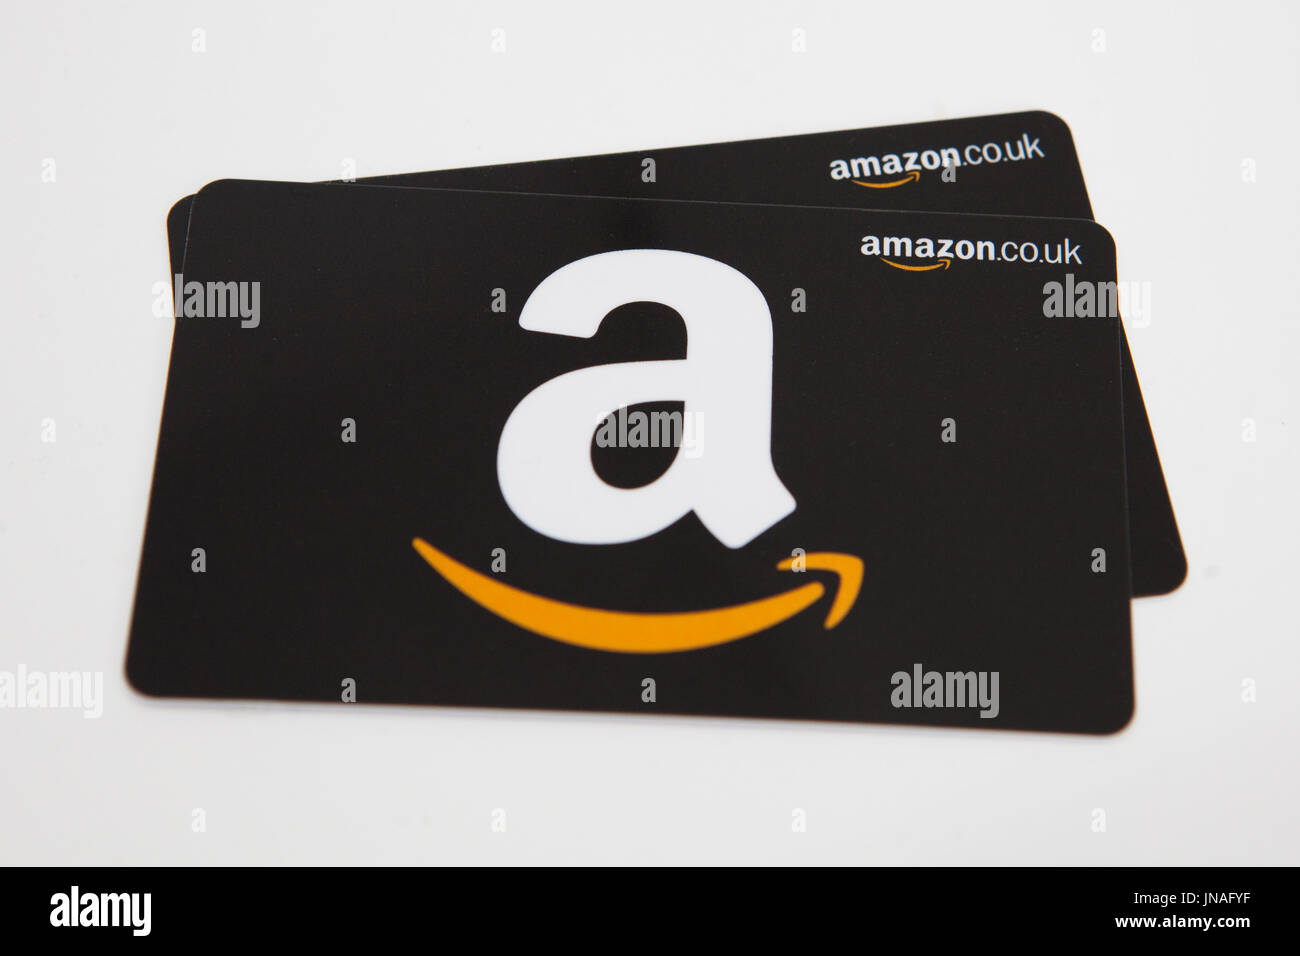 Amazon gift cards are sold at a variety of stores including 7-Eleven, Best Buy, CVS Pharmacy, Dollar General, Food Lion, Kroger, Lowes, Sam's Club and Walgreens. An Amazon gift card is a restricted monetary equivalent issued by Amazon that is redeemable toward millions of items on Amazon. Amazon gift cards have no fees and do not expire.